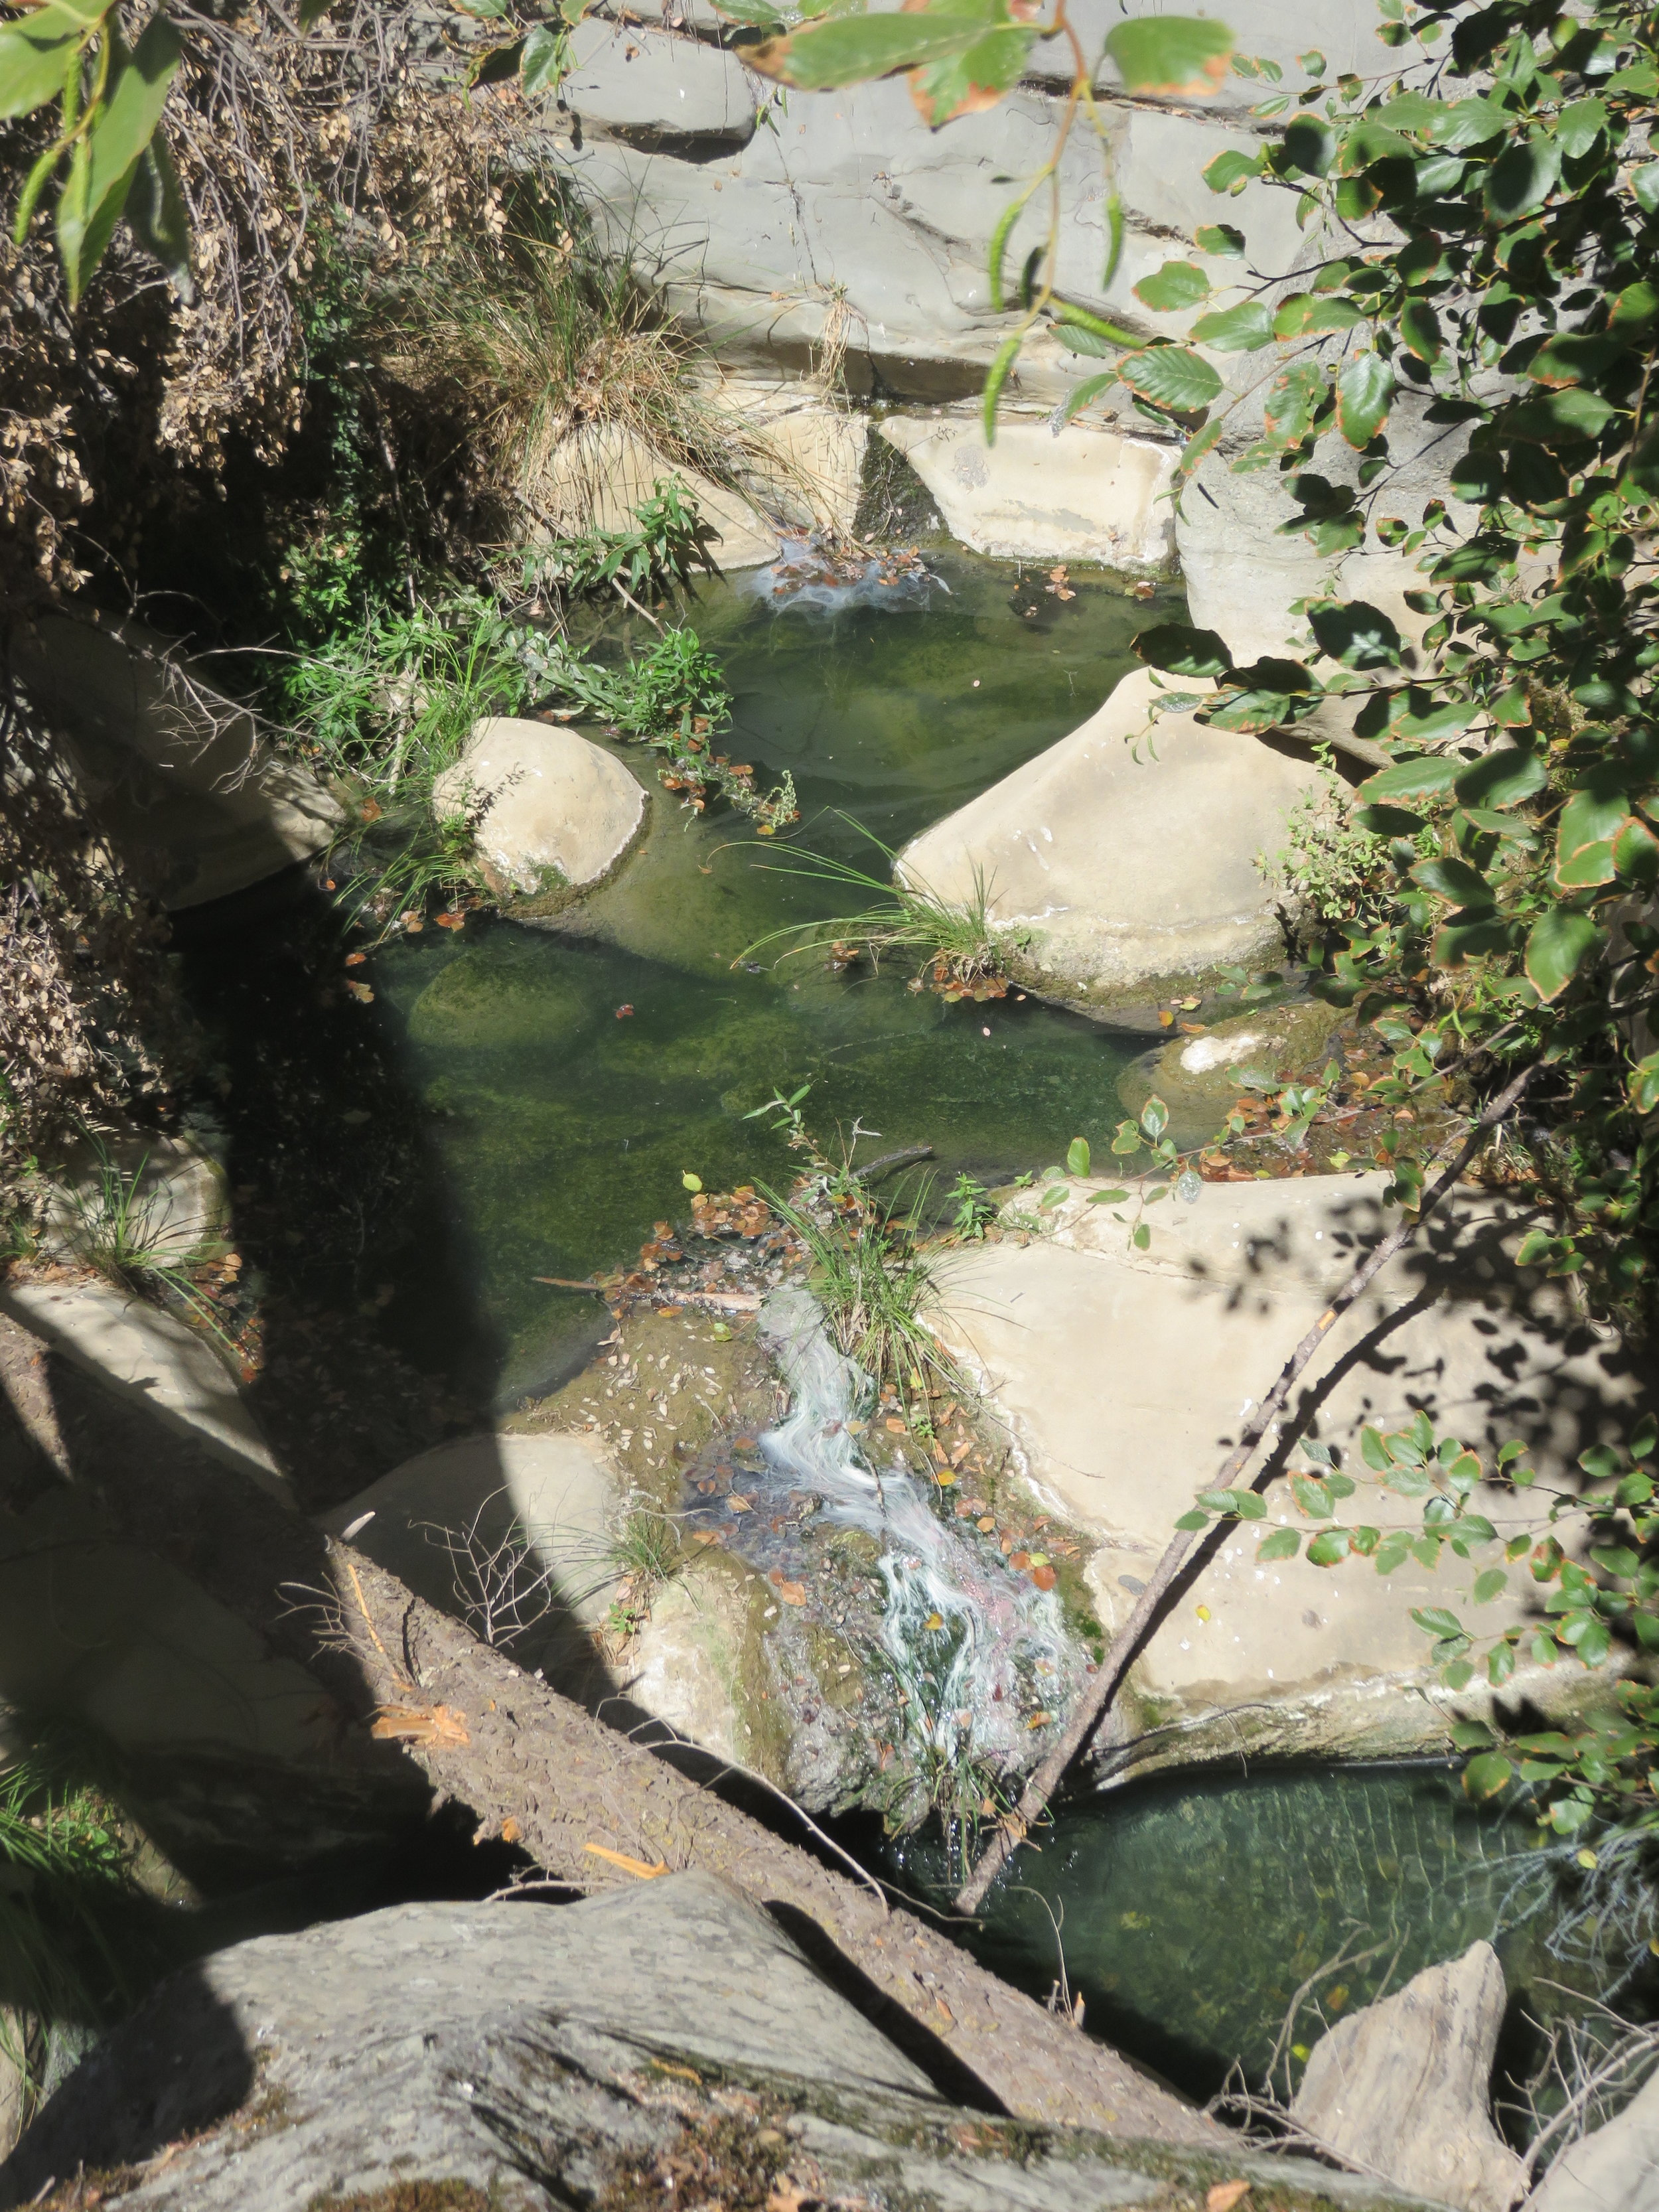 This little oasis of water is a wonderful site in drought stricken California.